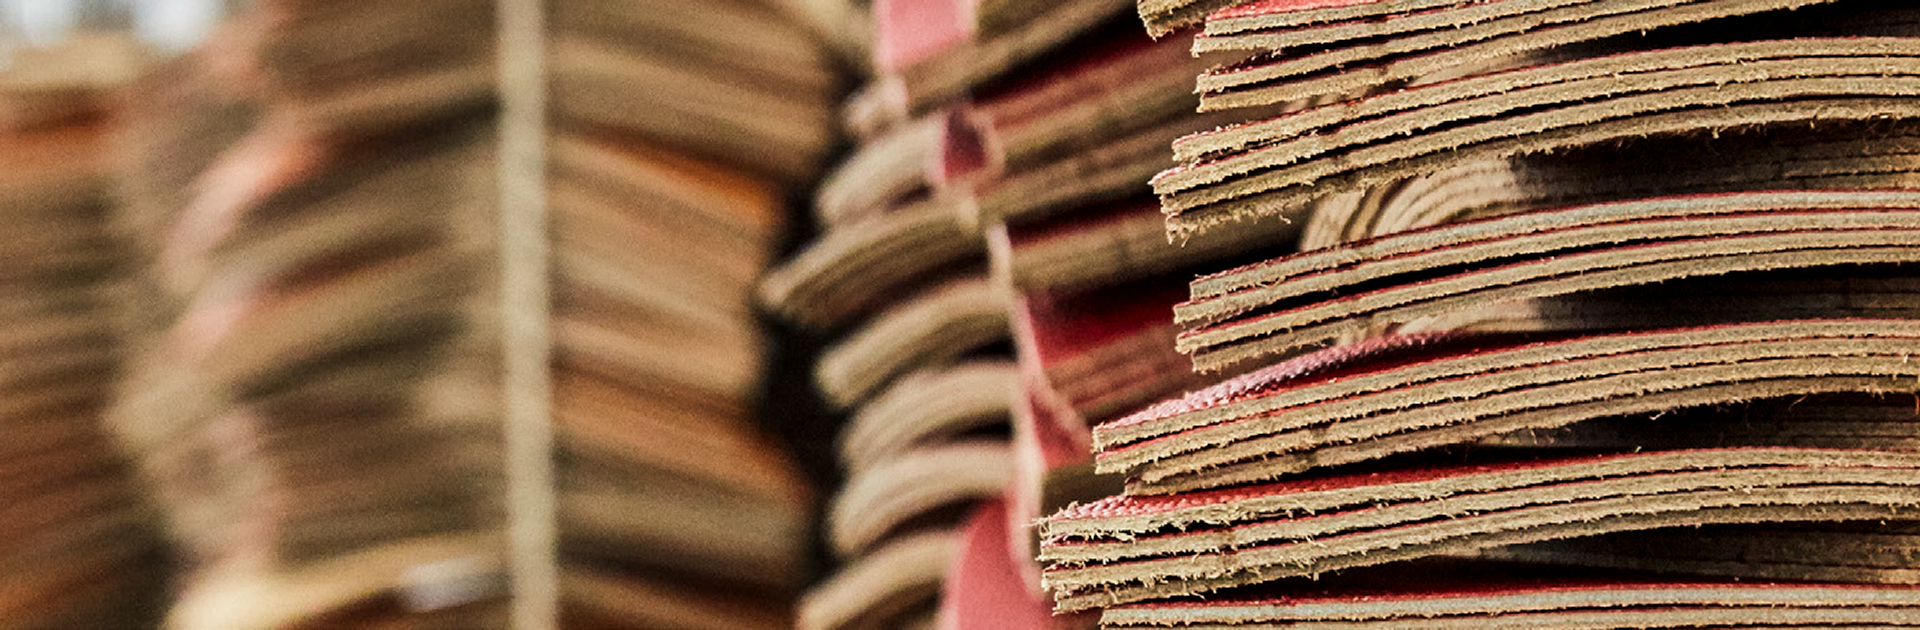 close up photo of stacks of leather